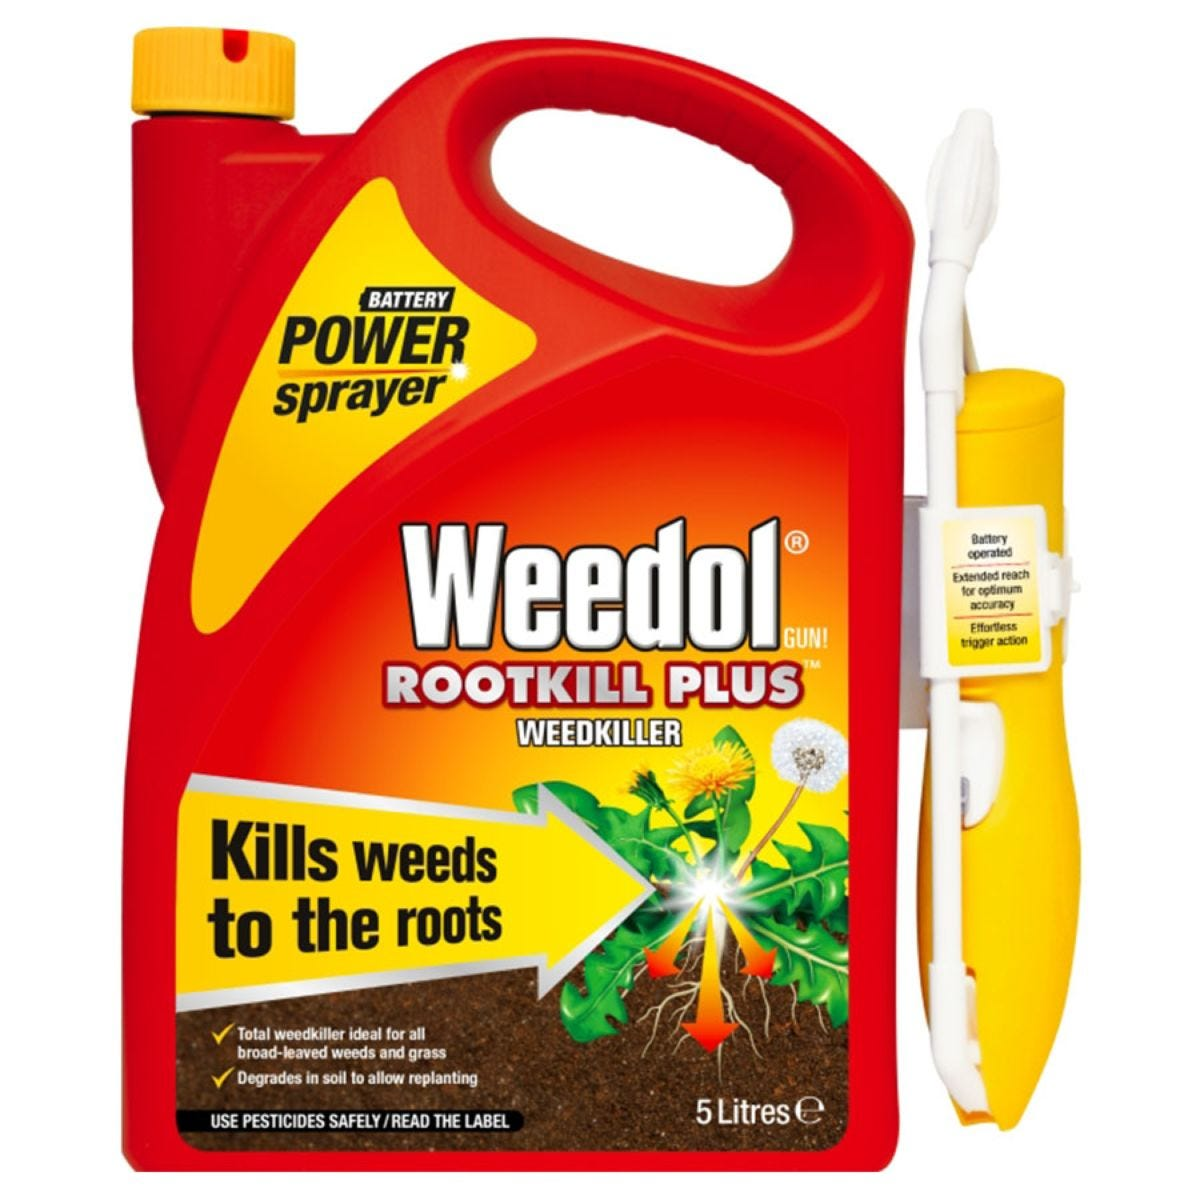 Weedol Rootkill Plus Power Spray – 5 Litres